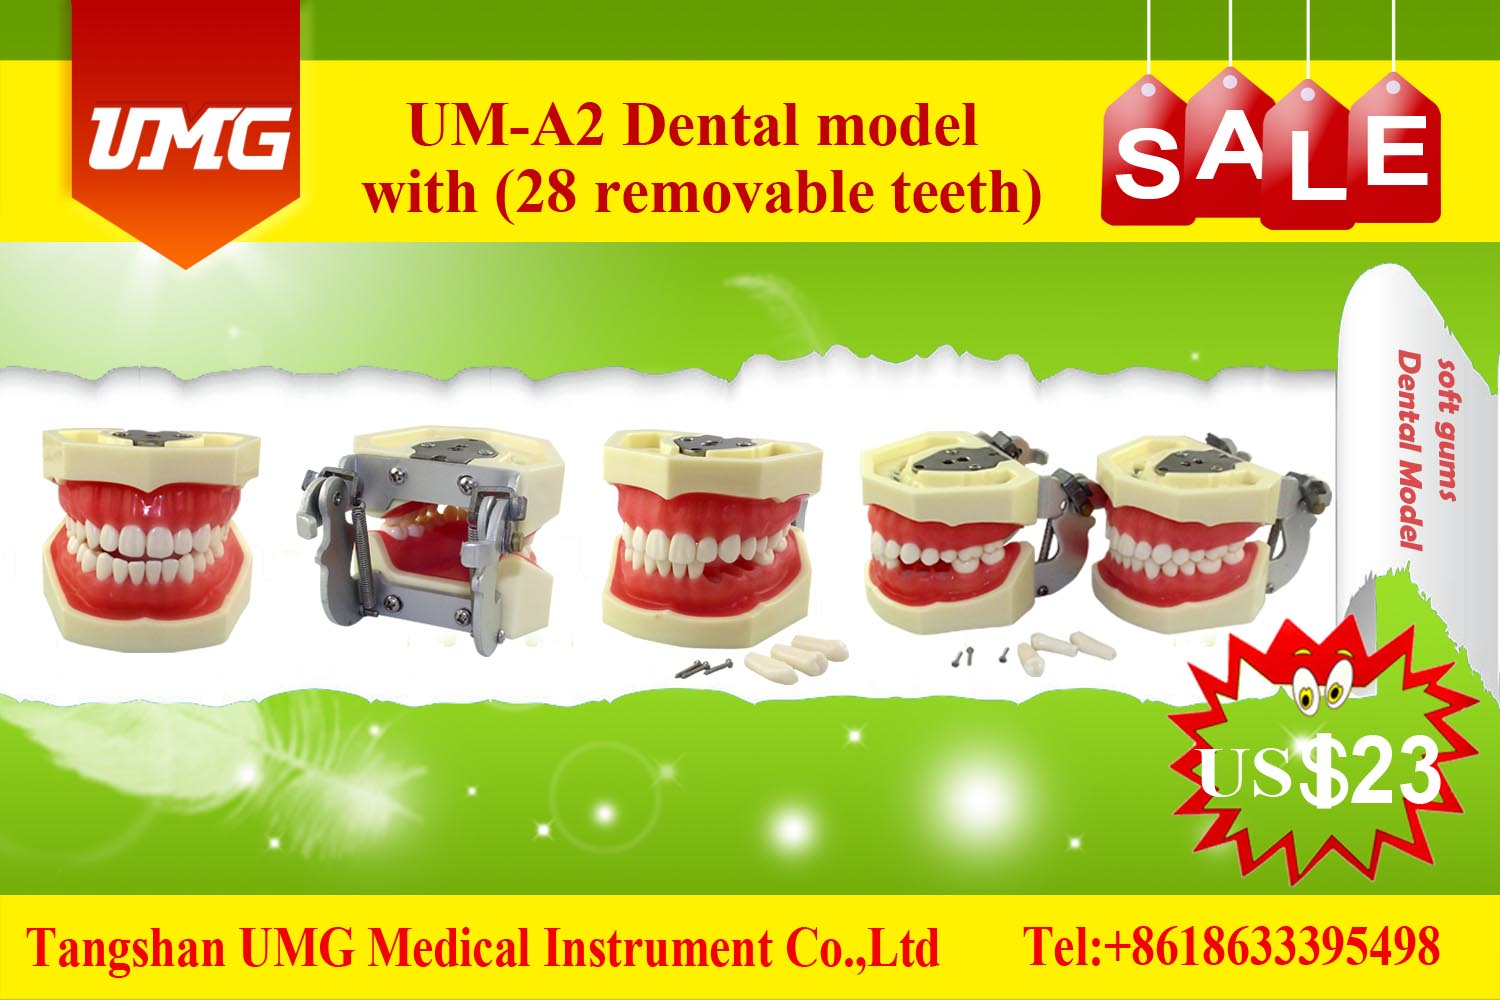 UM-A2 soft gums dental model with 28 removable teeth